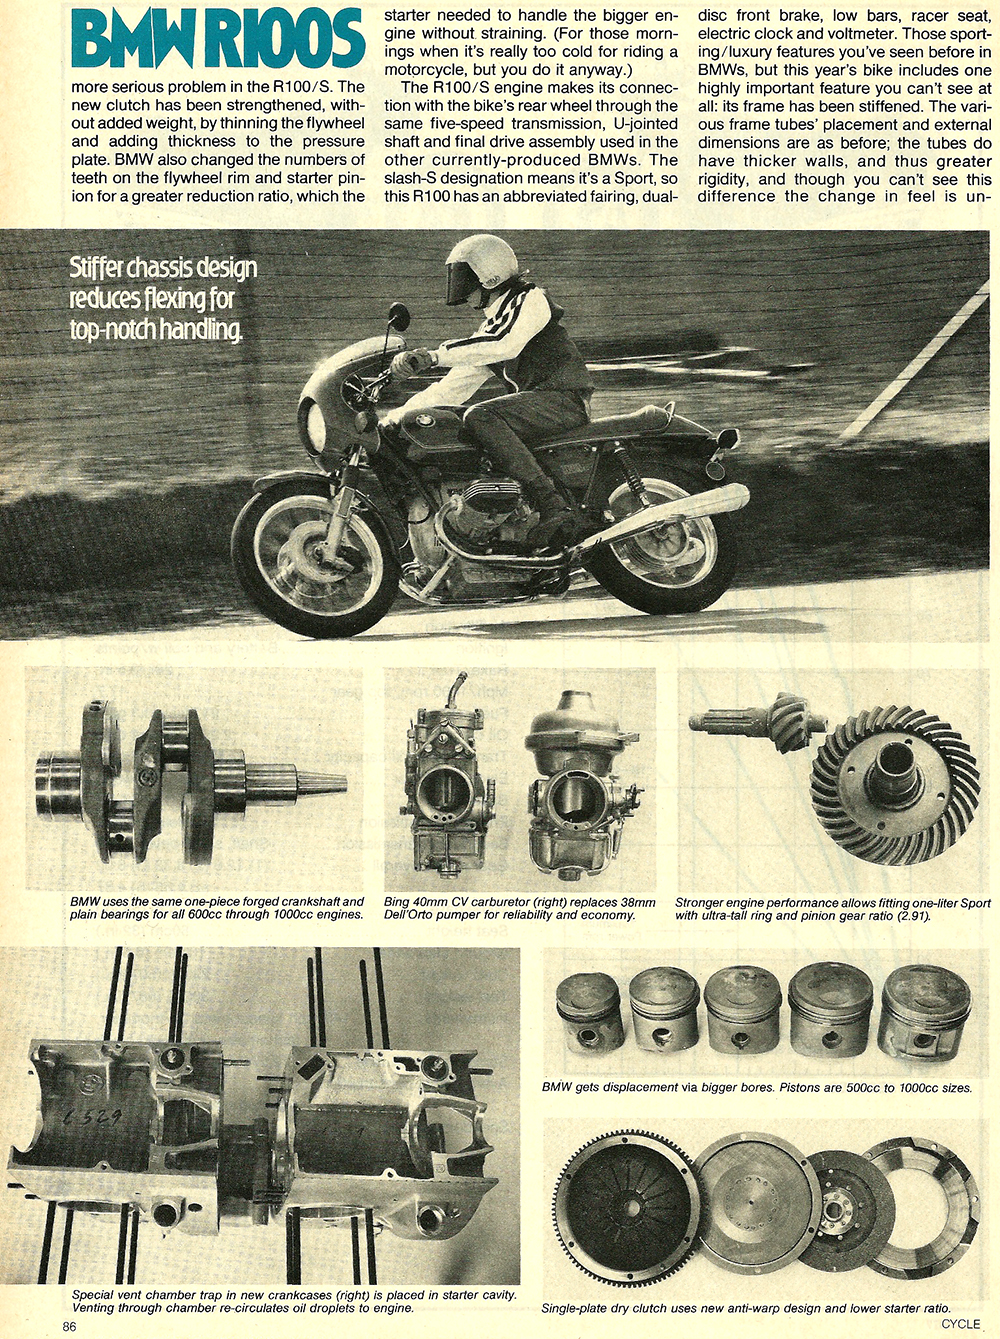 1977 BMW R100S road test 5.jpg